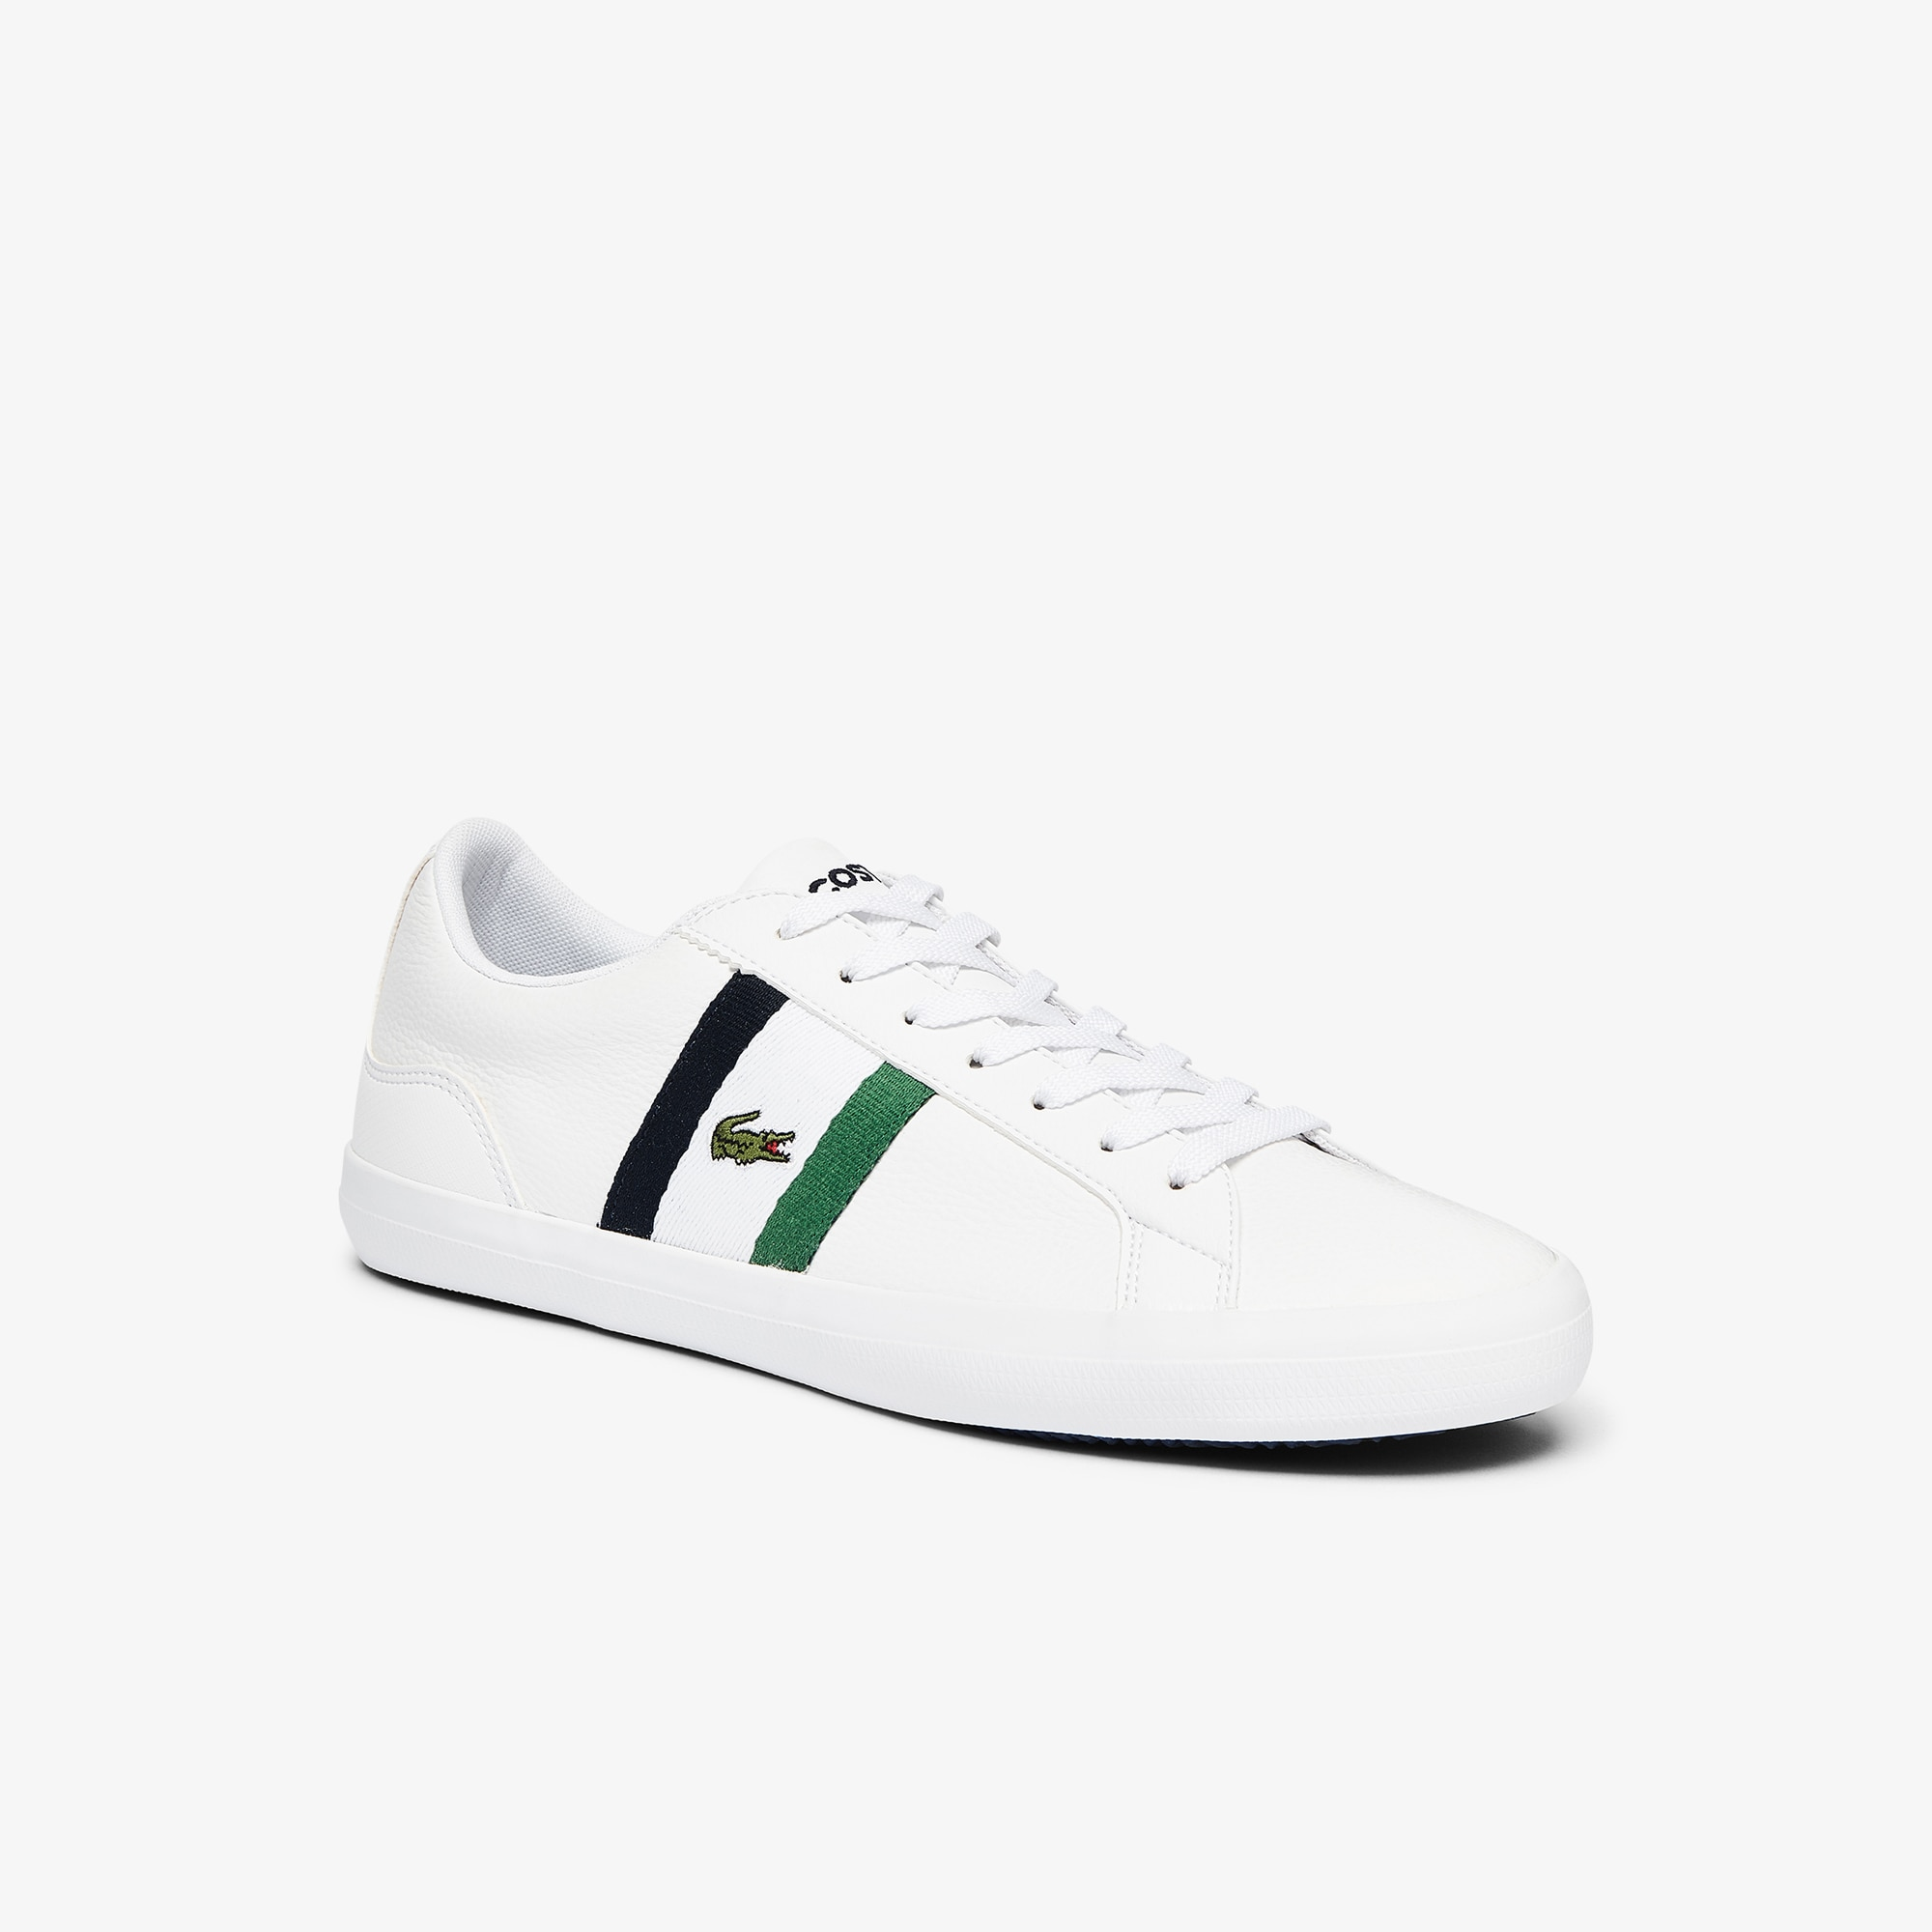 5f0175b19126 All Shoes | LACOSTE